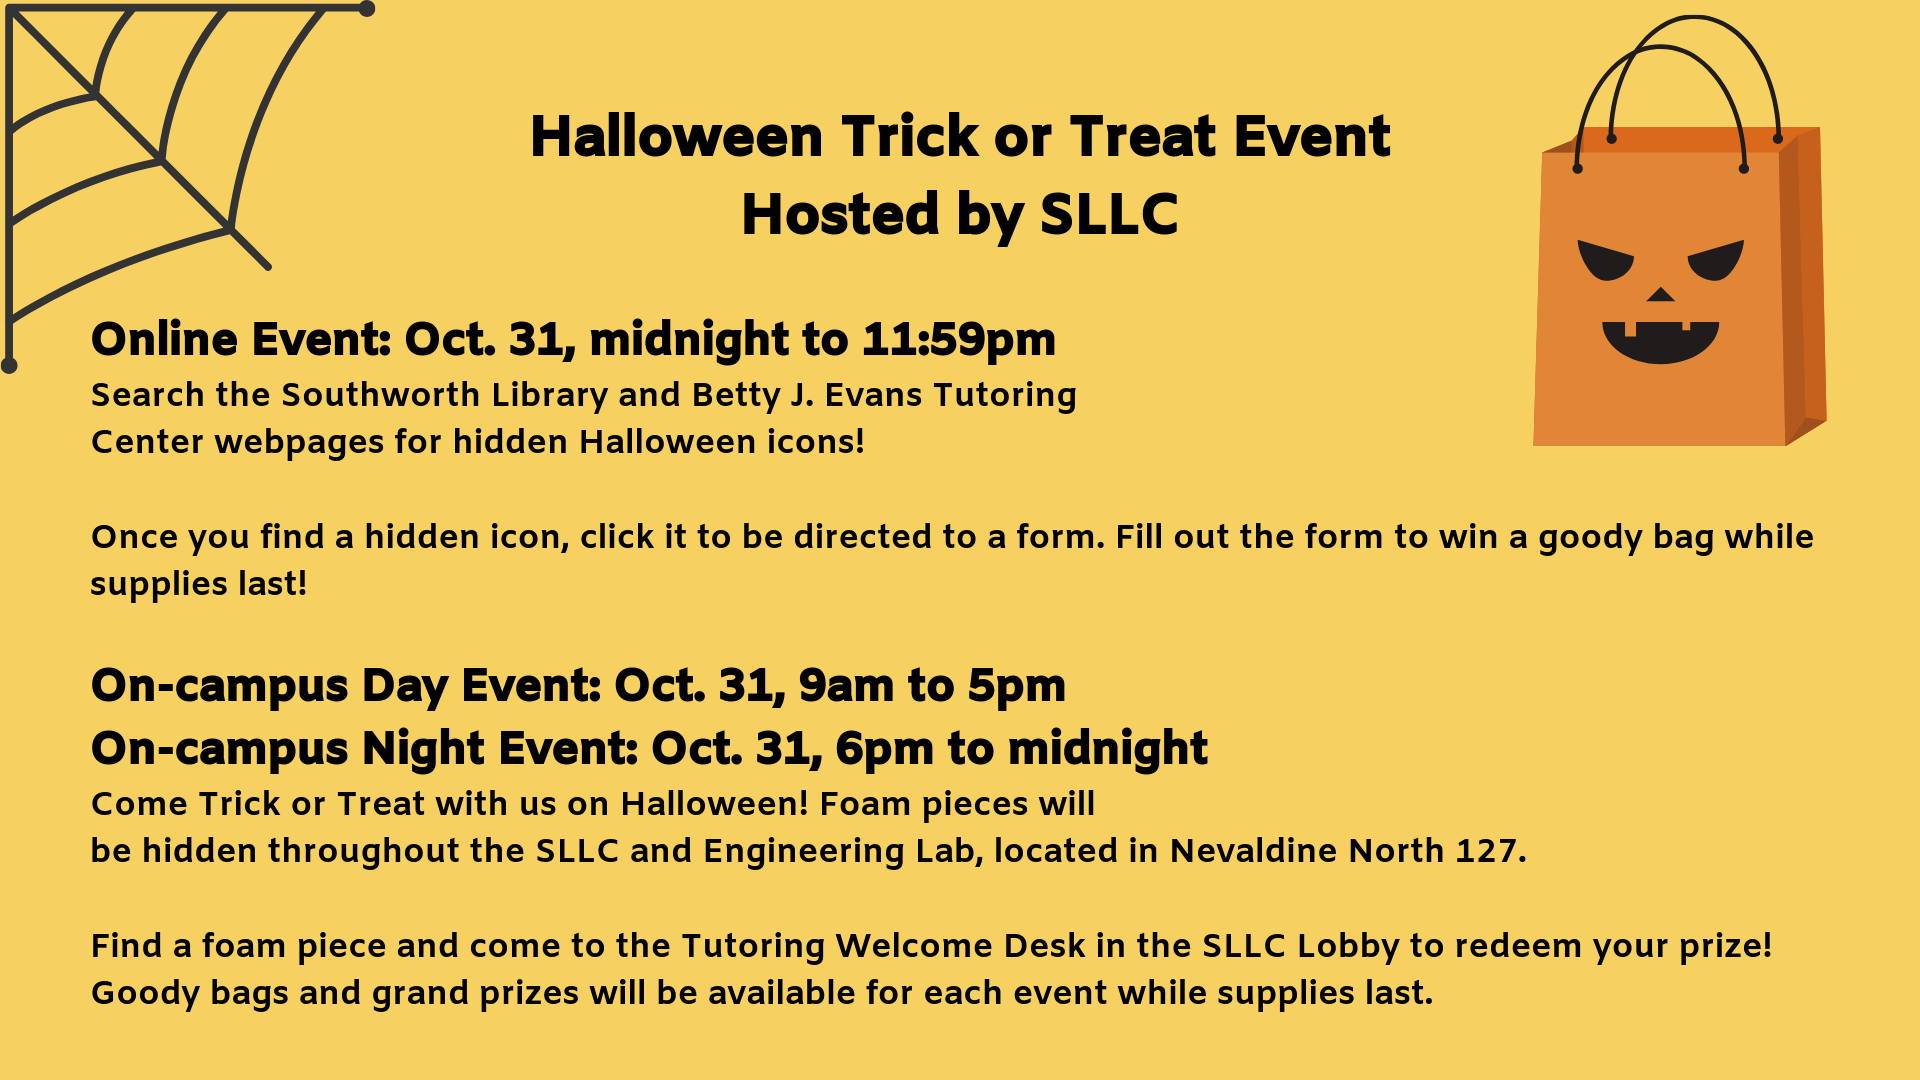 Halloween Trick or Treat Event Hosted by SLLC. Online Event: Oct. 31, midnight to 11:59pm Search the Southworth Library and Betty J. Evans Tutoring Center webpages for hidden Halloween icons!   Once you find a hidden icon, click it to be directed to a form. Fill out the form to win a goody bag while supplies last!    On-campus Day Event: Oct. 31, 9am to 5pm On-campus Night Event: Oct. 31, 6pm to midnight Come Trick or Treat with us on Halloween! Foam pieces will be hidden throughout the SLLC and Engineering Lab, located in Nevaldine North 127.   Find a foam piece and come to the Tutoring Welcome Desk in the SLLC Lobby to redeem your prize! Goody bags and grand prizes will be available for each event while supplies last.